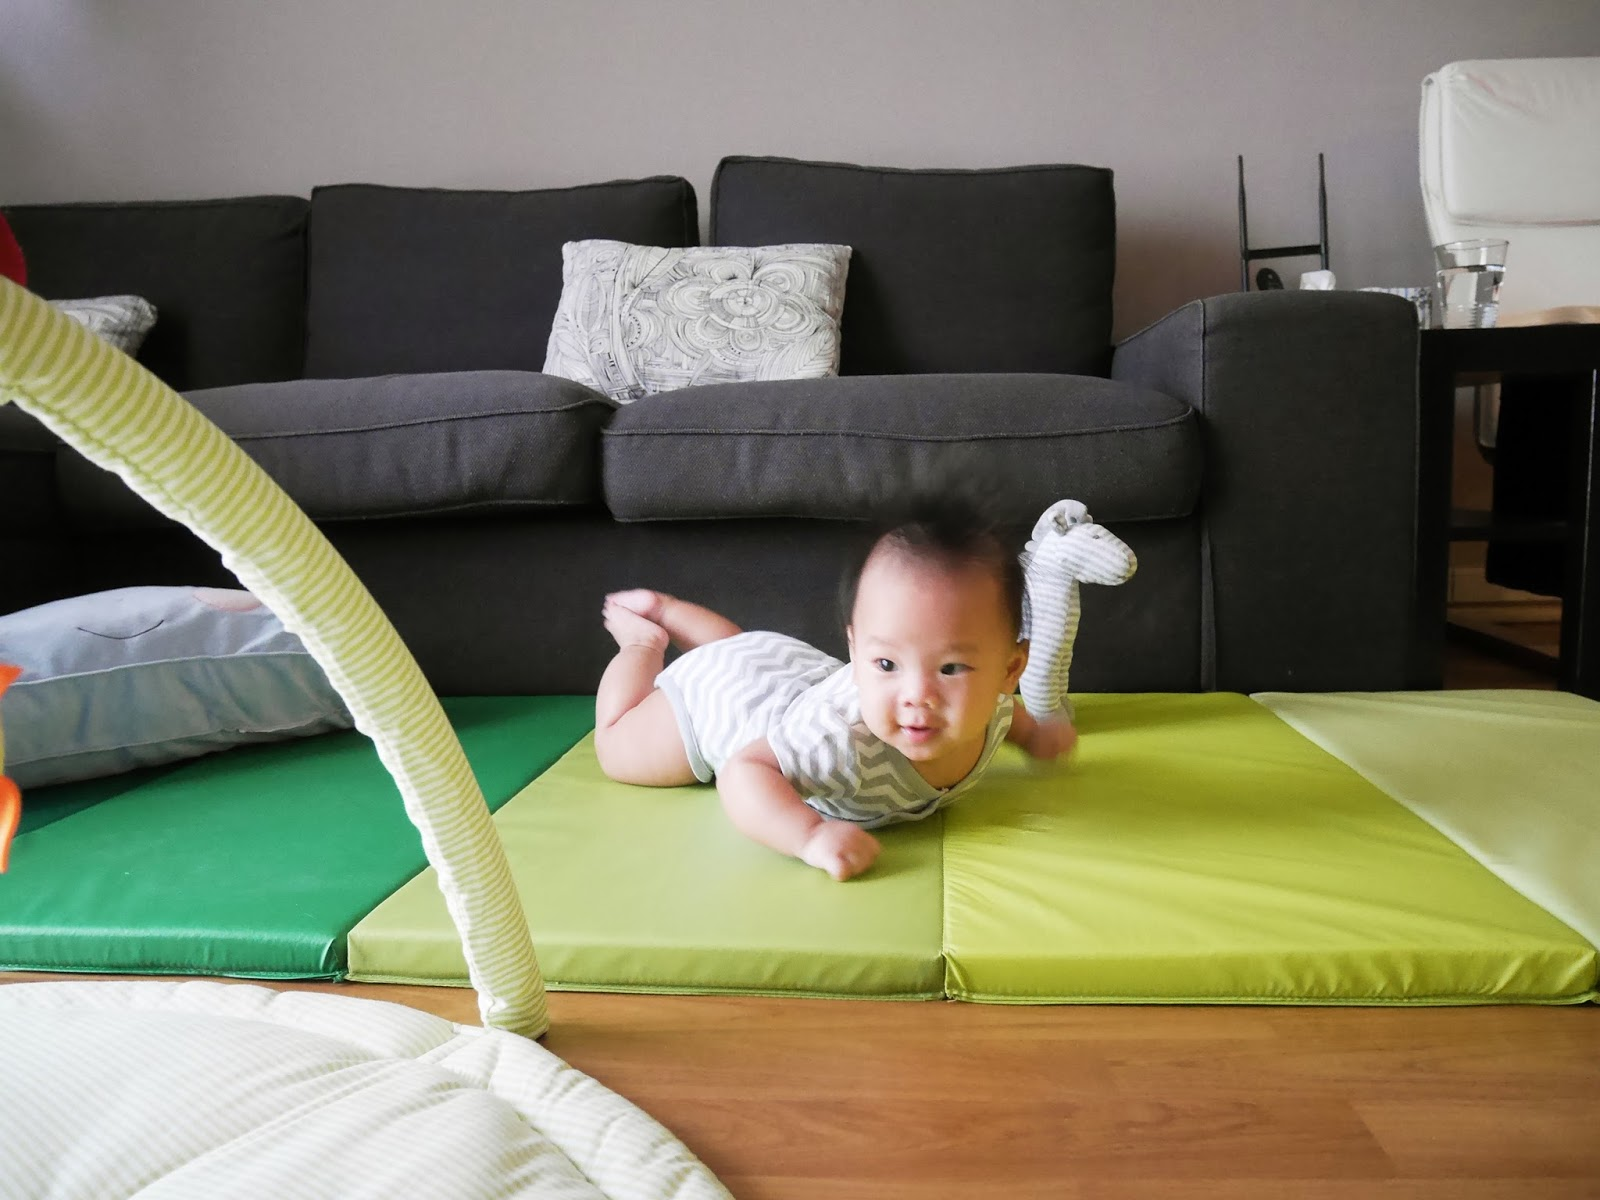 Being A Lover Of Tummy Time We Thought It D Be Great If Got Him Foam Mat To Practice Crawling In The Living Room